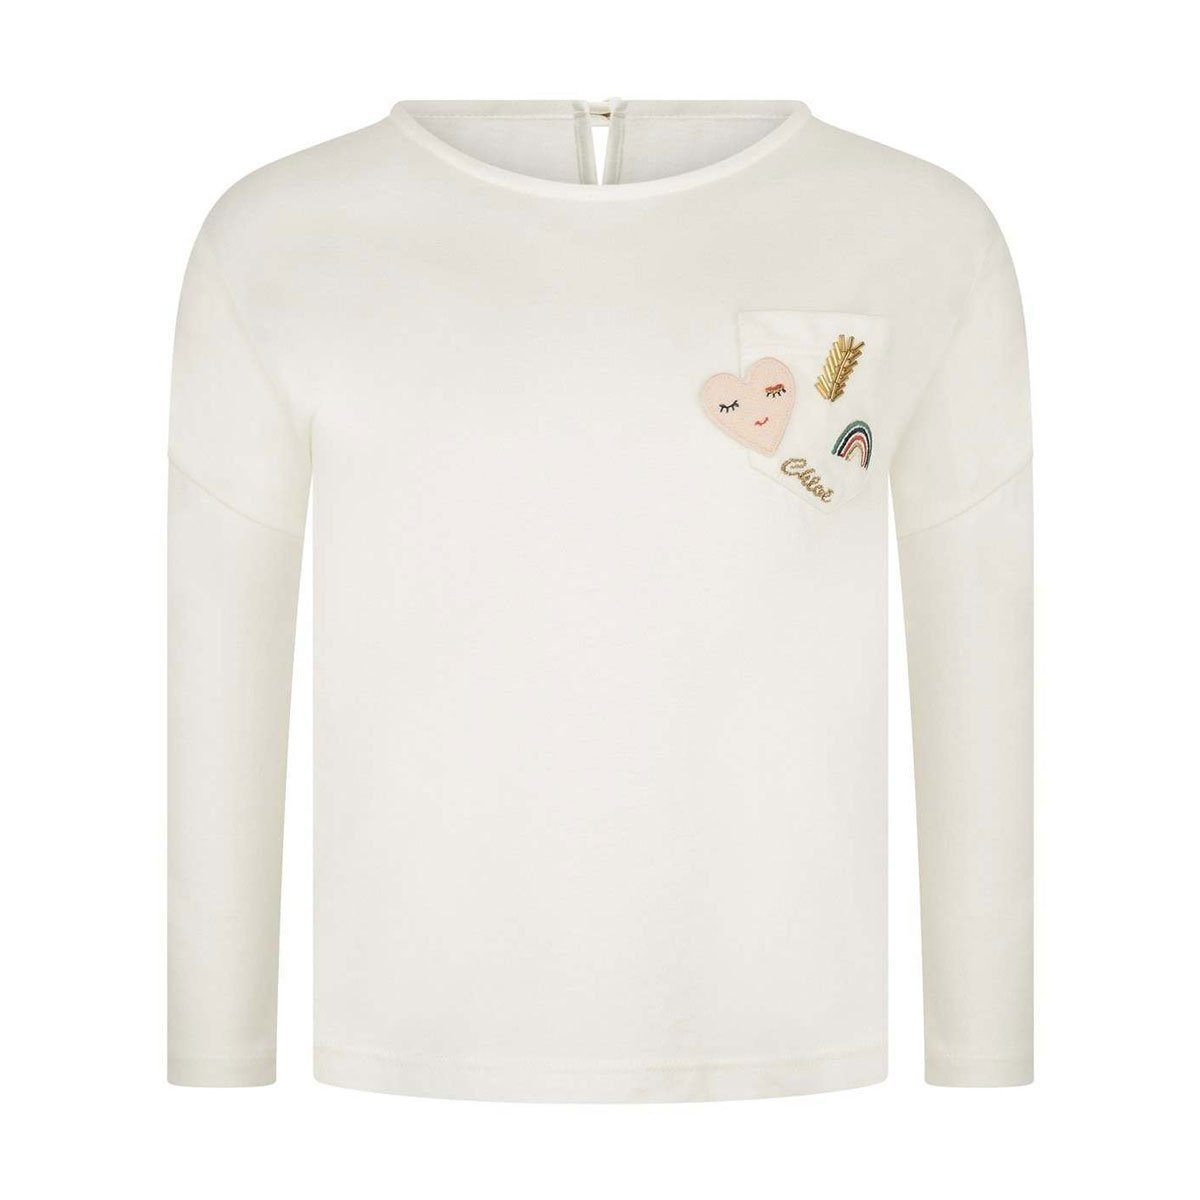 Chloe - T-Shirt For Girls, Off White